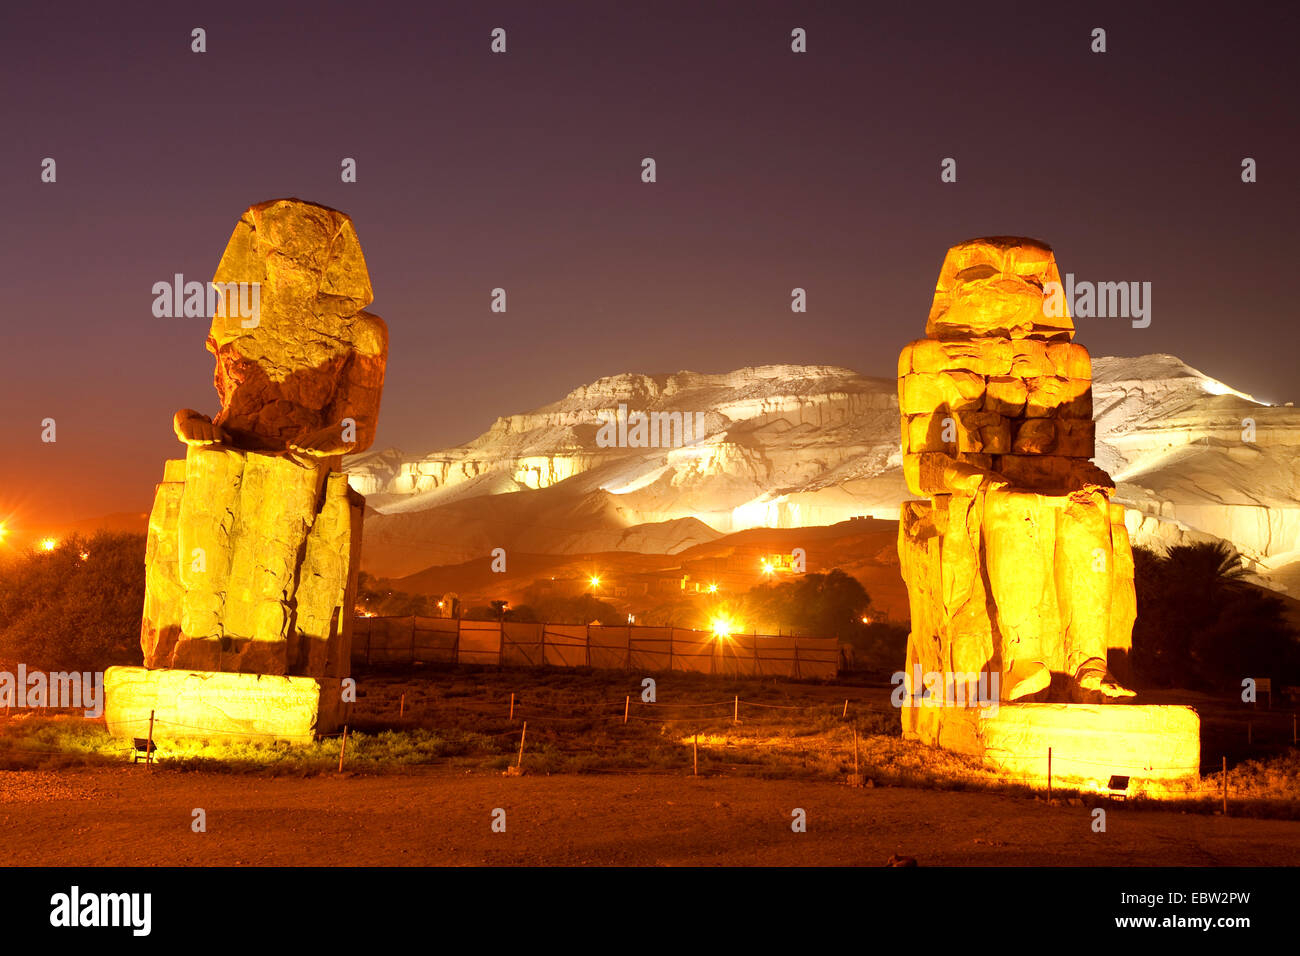 illuminated Colossi of Memnon at night,  two massive stone statues of Pharaoh Amenhotep III, Egypt, Theben-West, Stock Photo